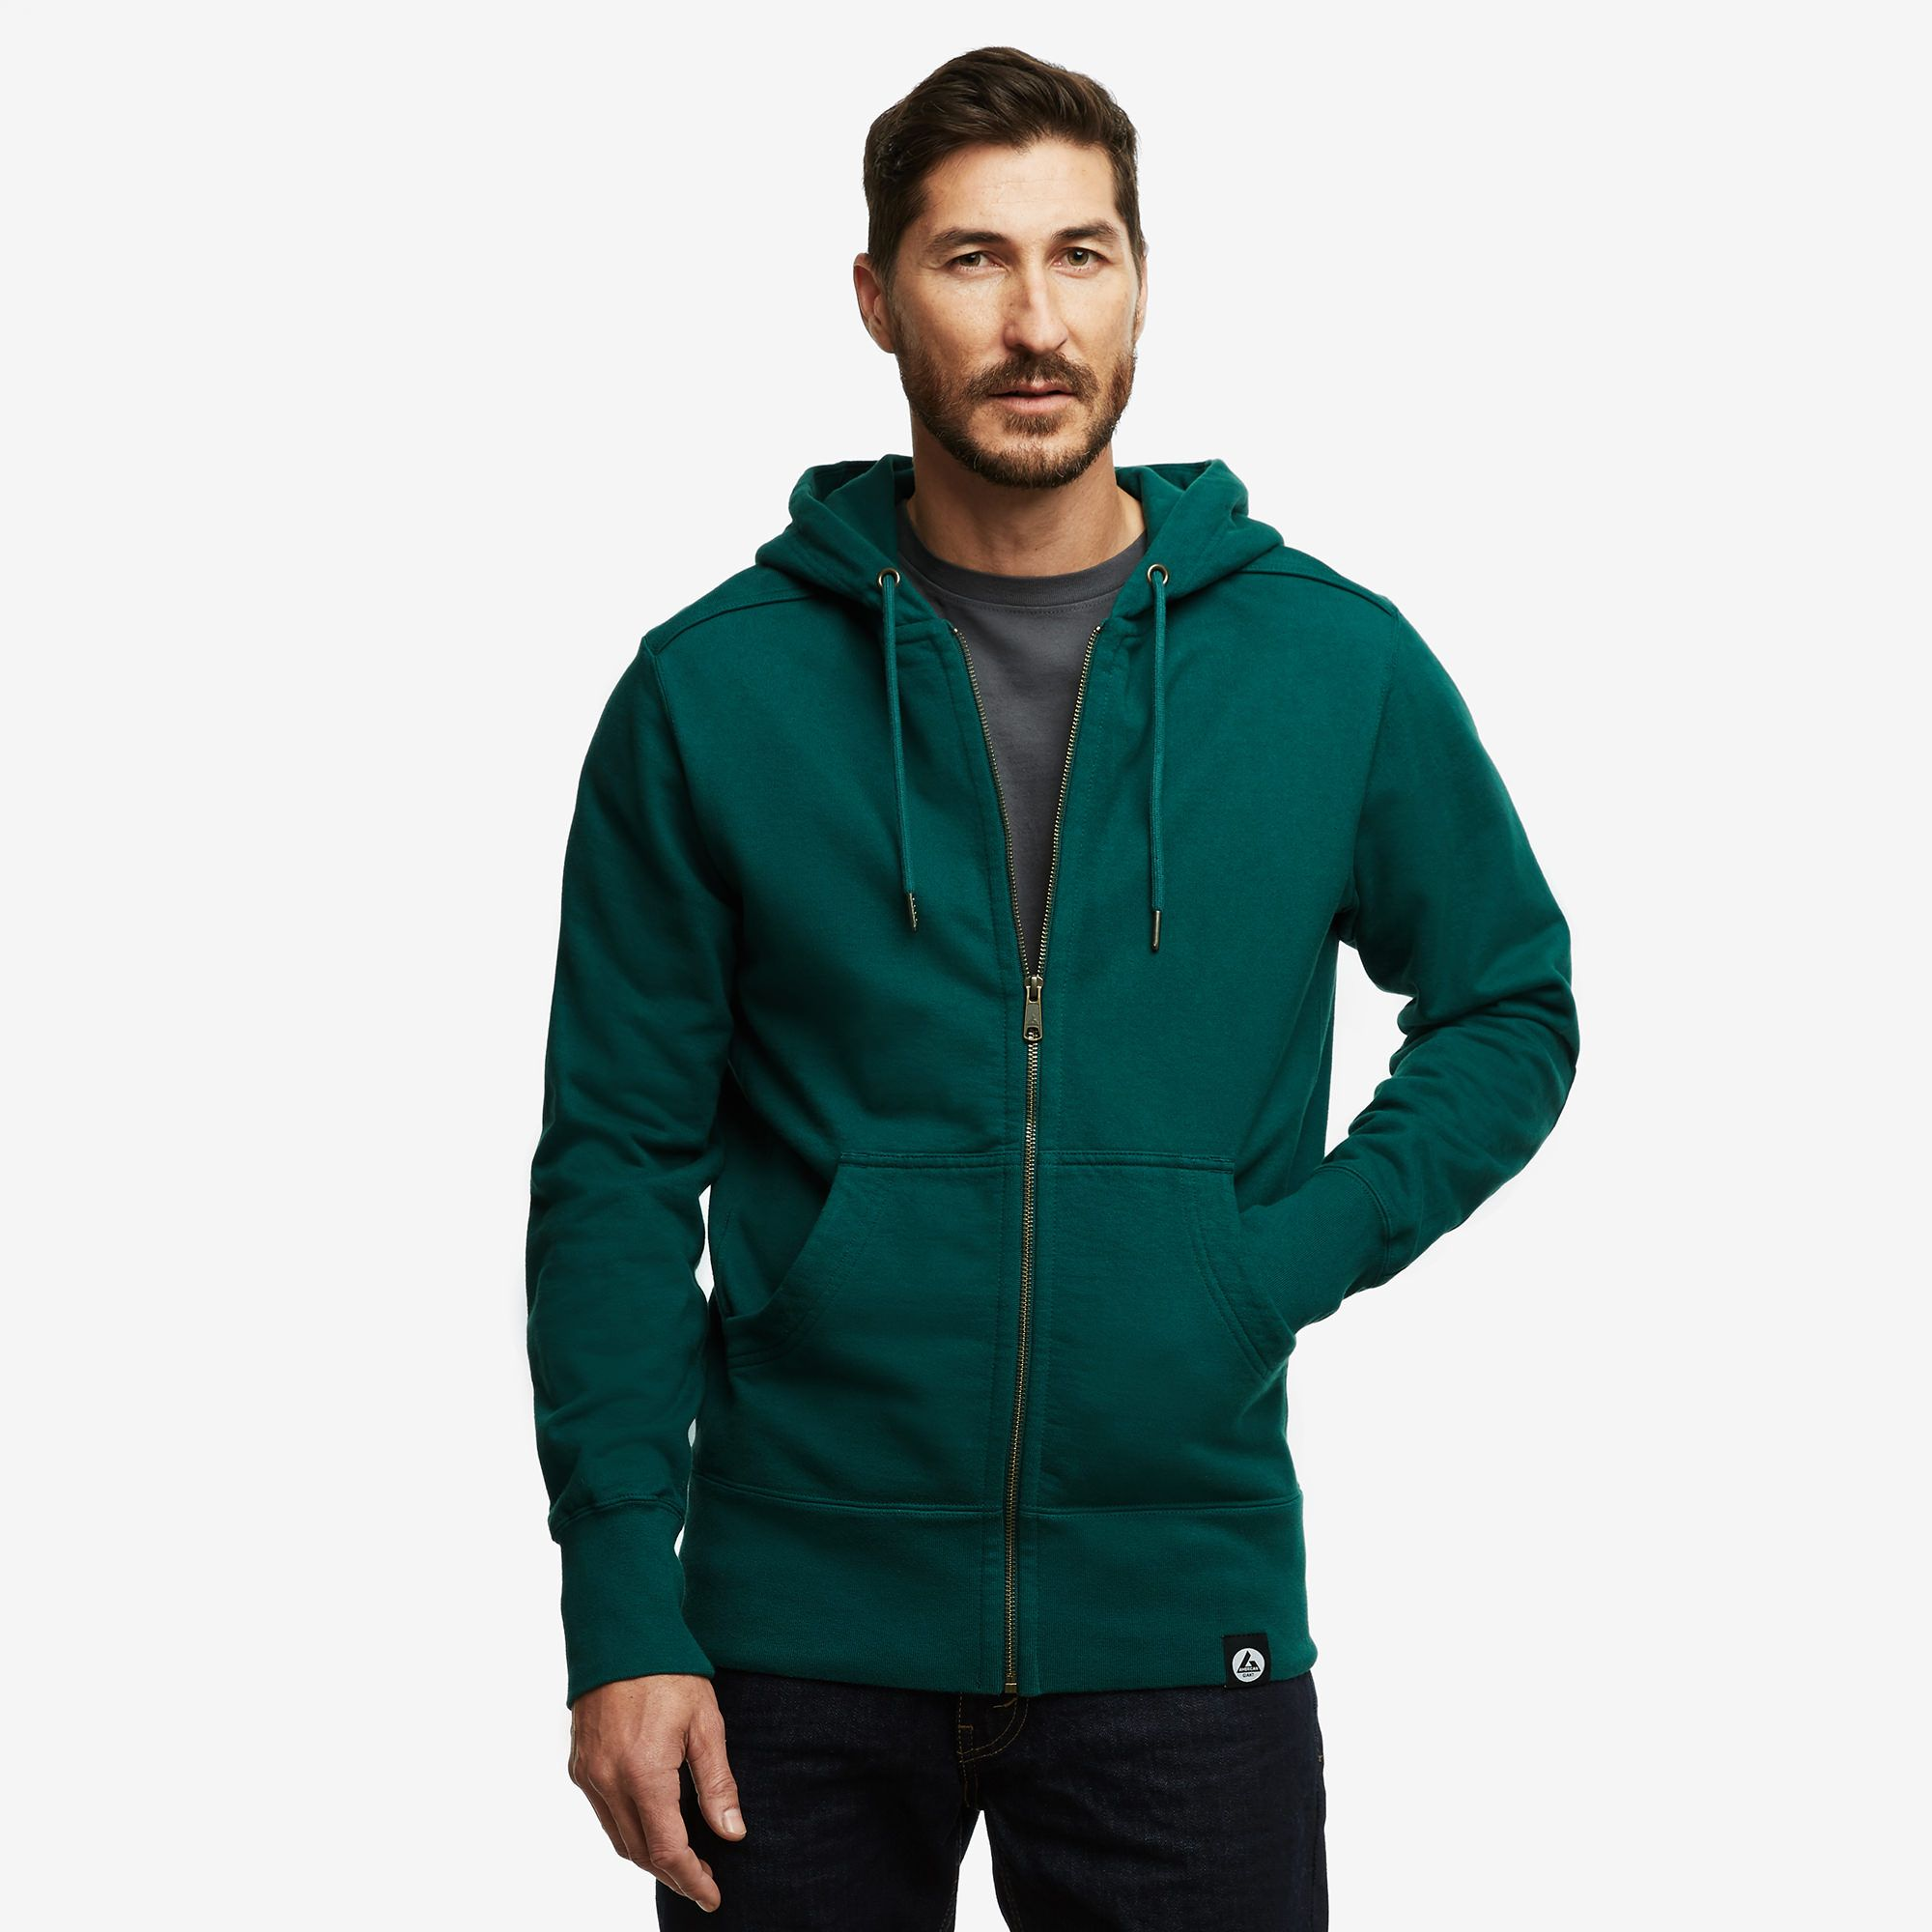 9b4289dd4c3a5 Shop our almost gone selection of Classic Full Zips Hoodies for Men.